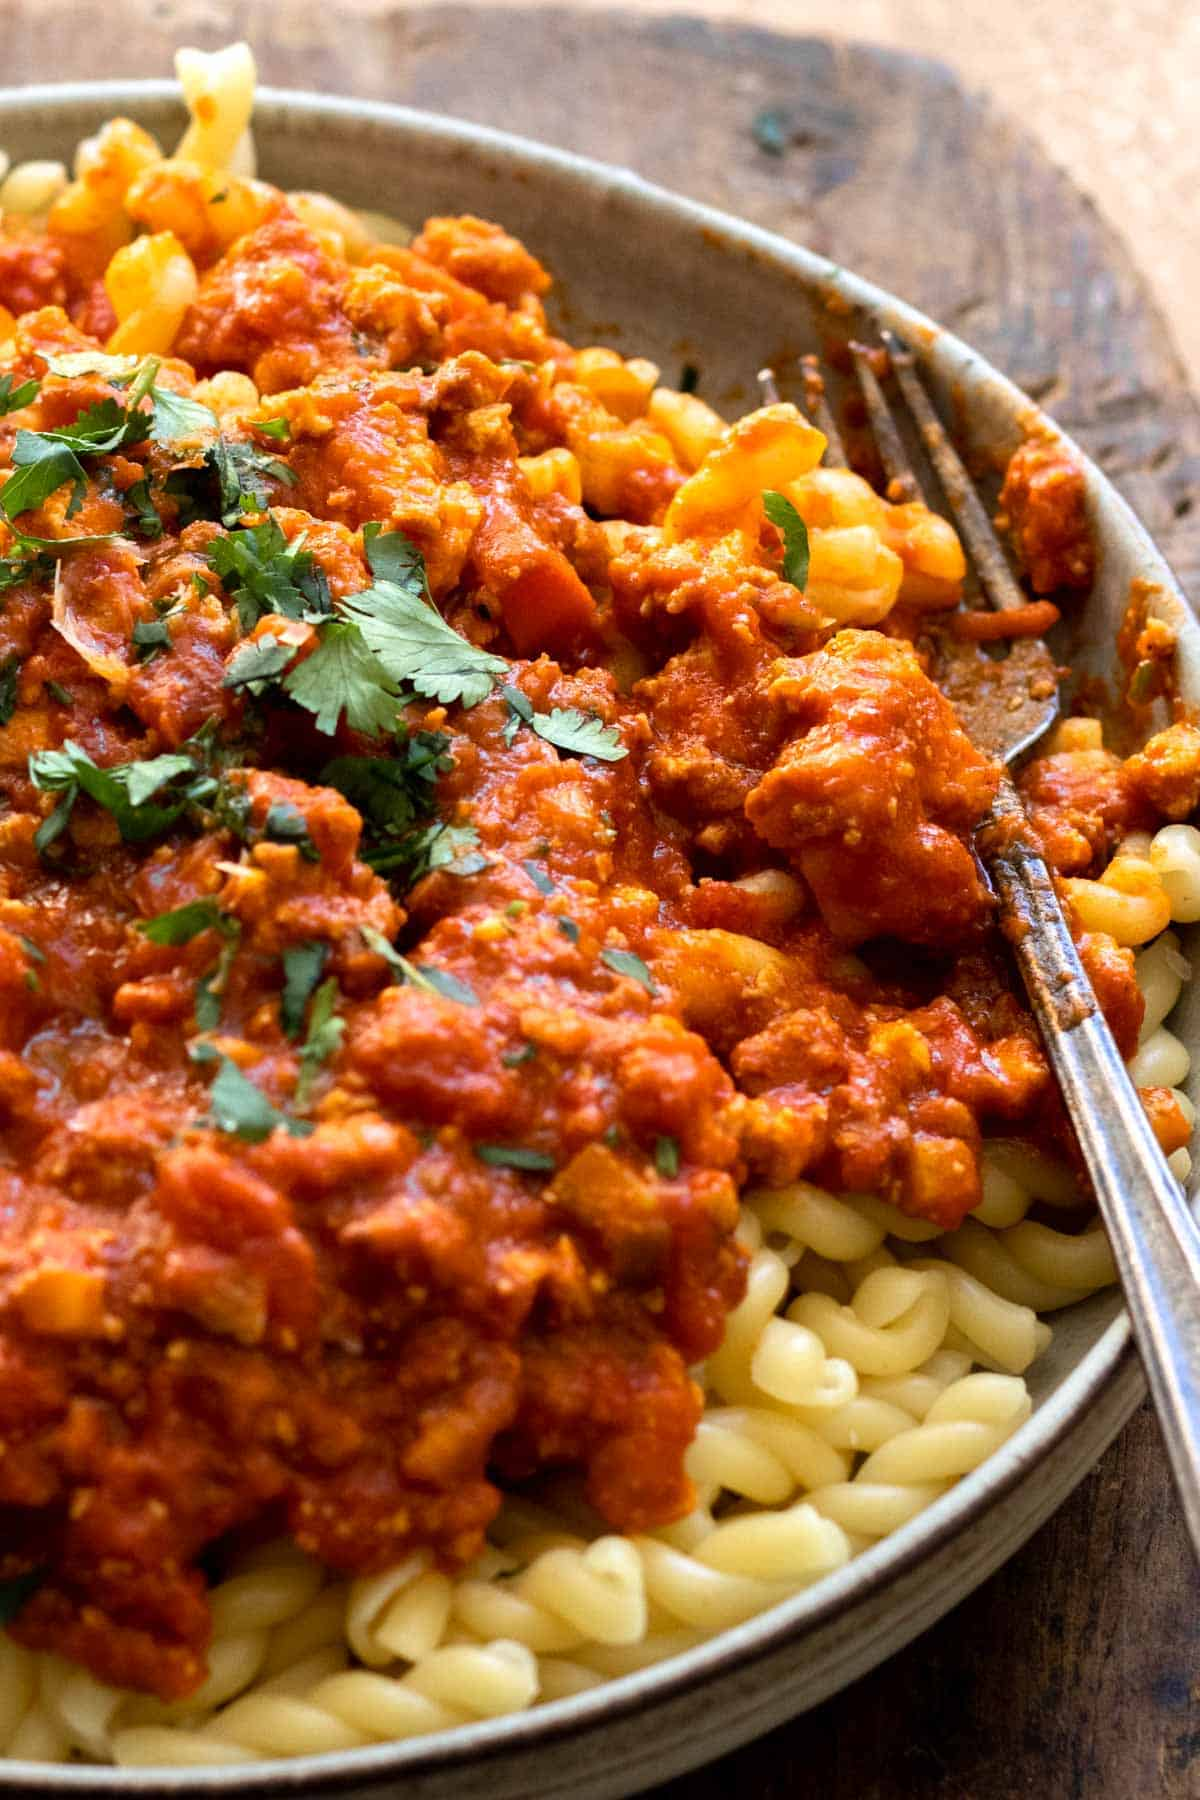 Finished bolognese dish sprinkled with fresh parsley over pasta.